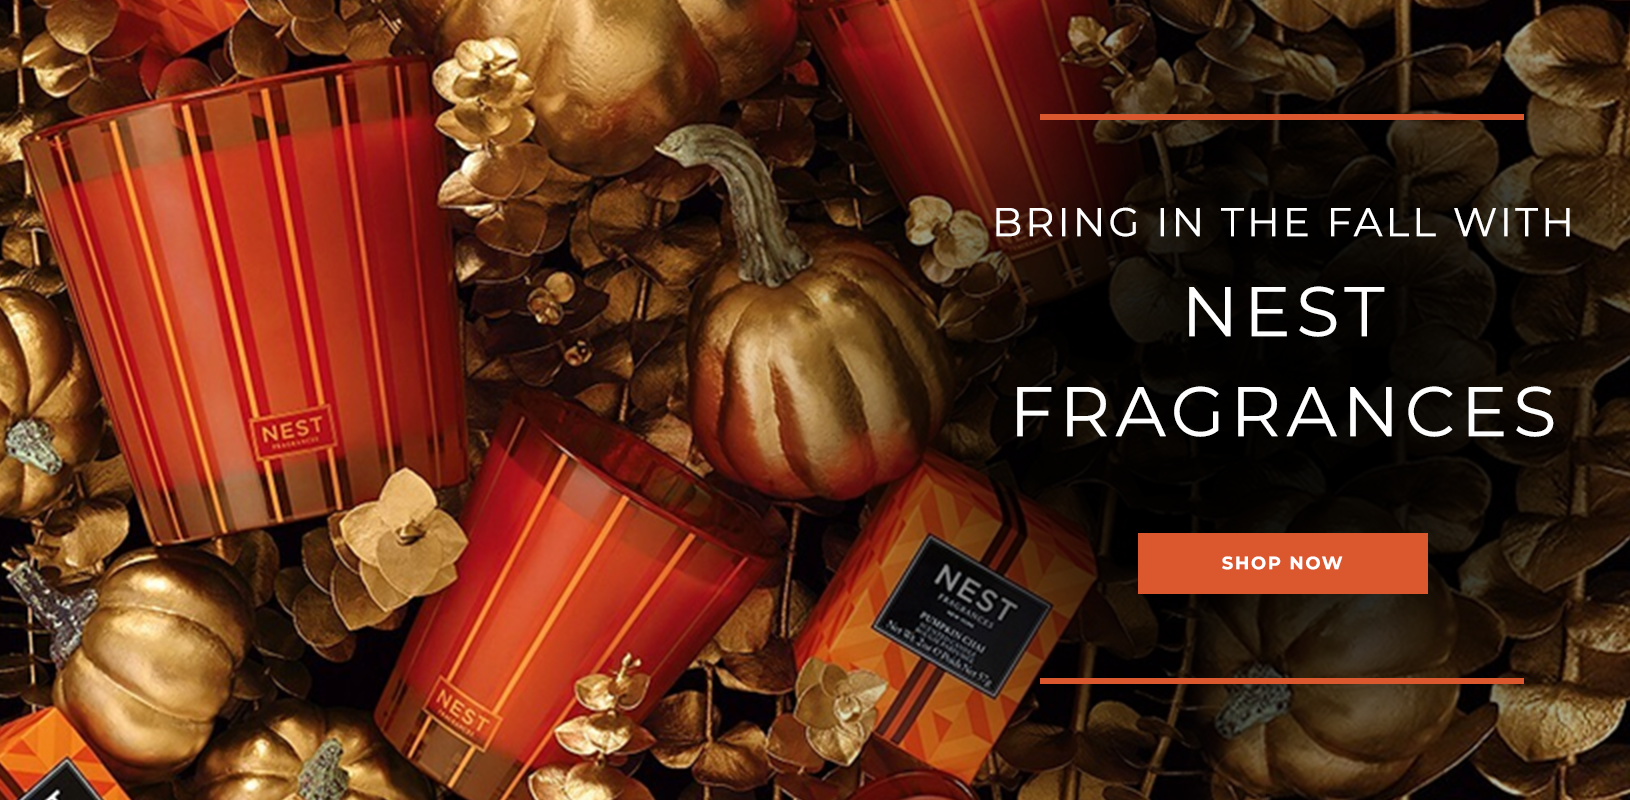 Bring in the Fall with NEST Fragrances